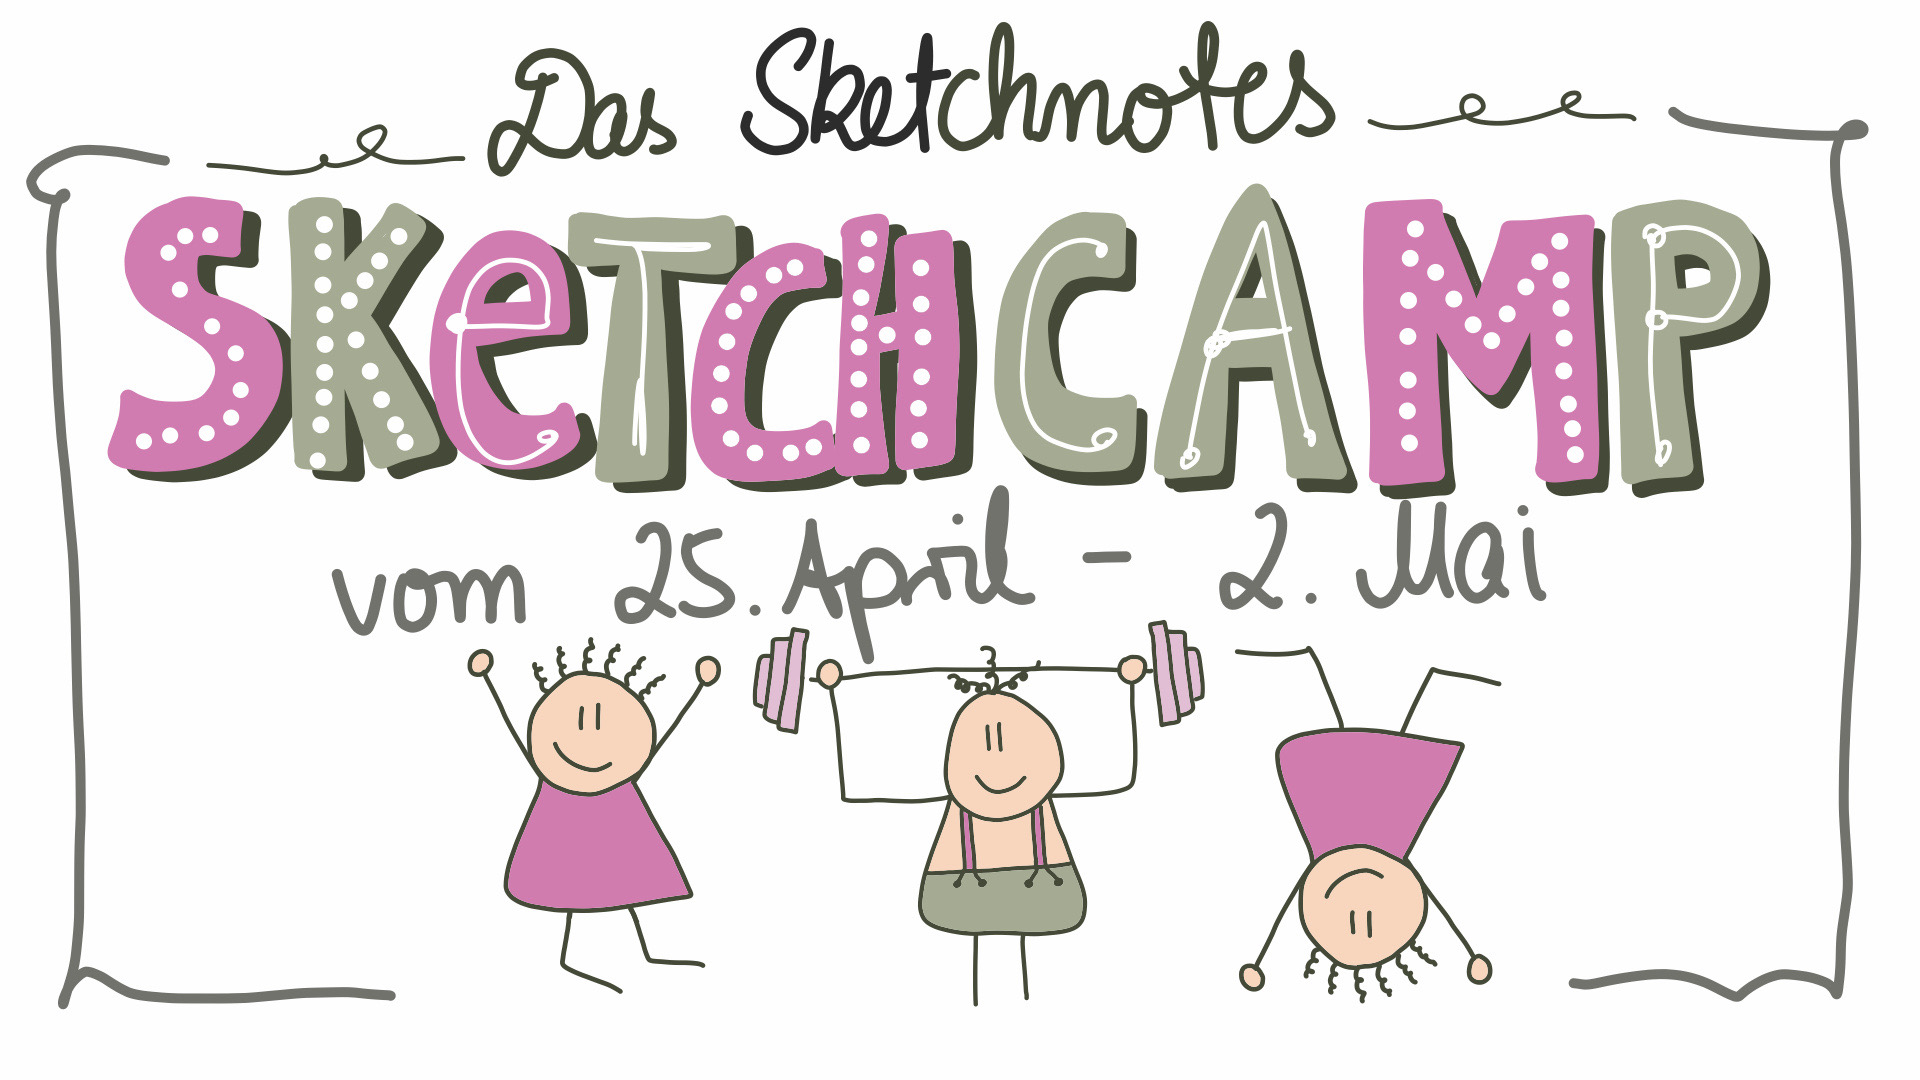 Das Sketchnotes Sketchcamp - 25. April bis 2. Mai